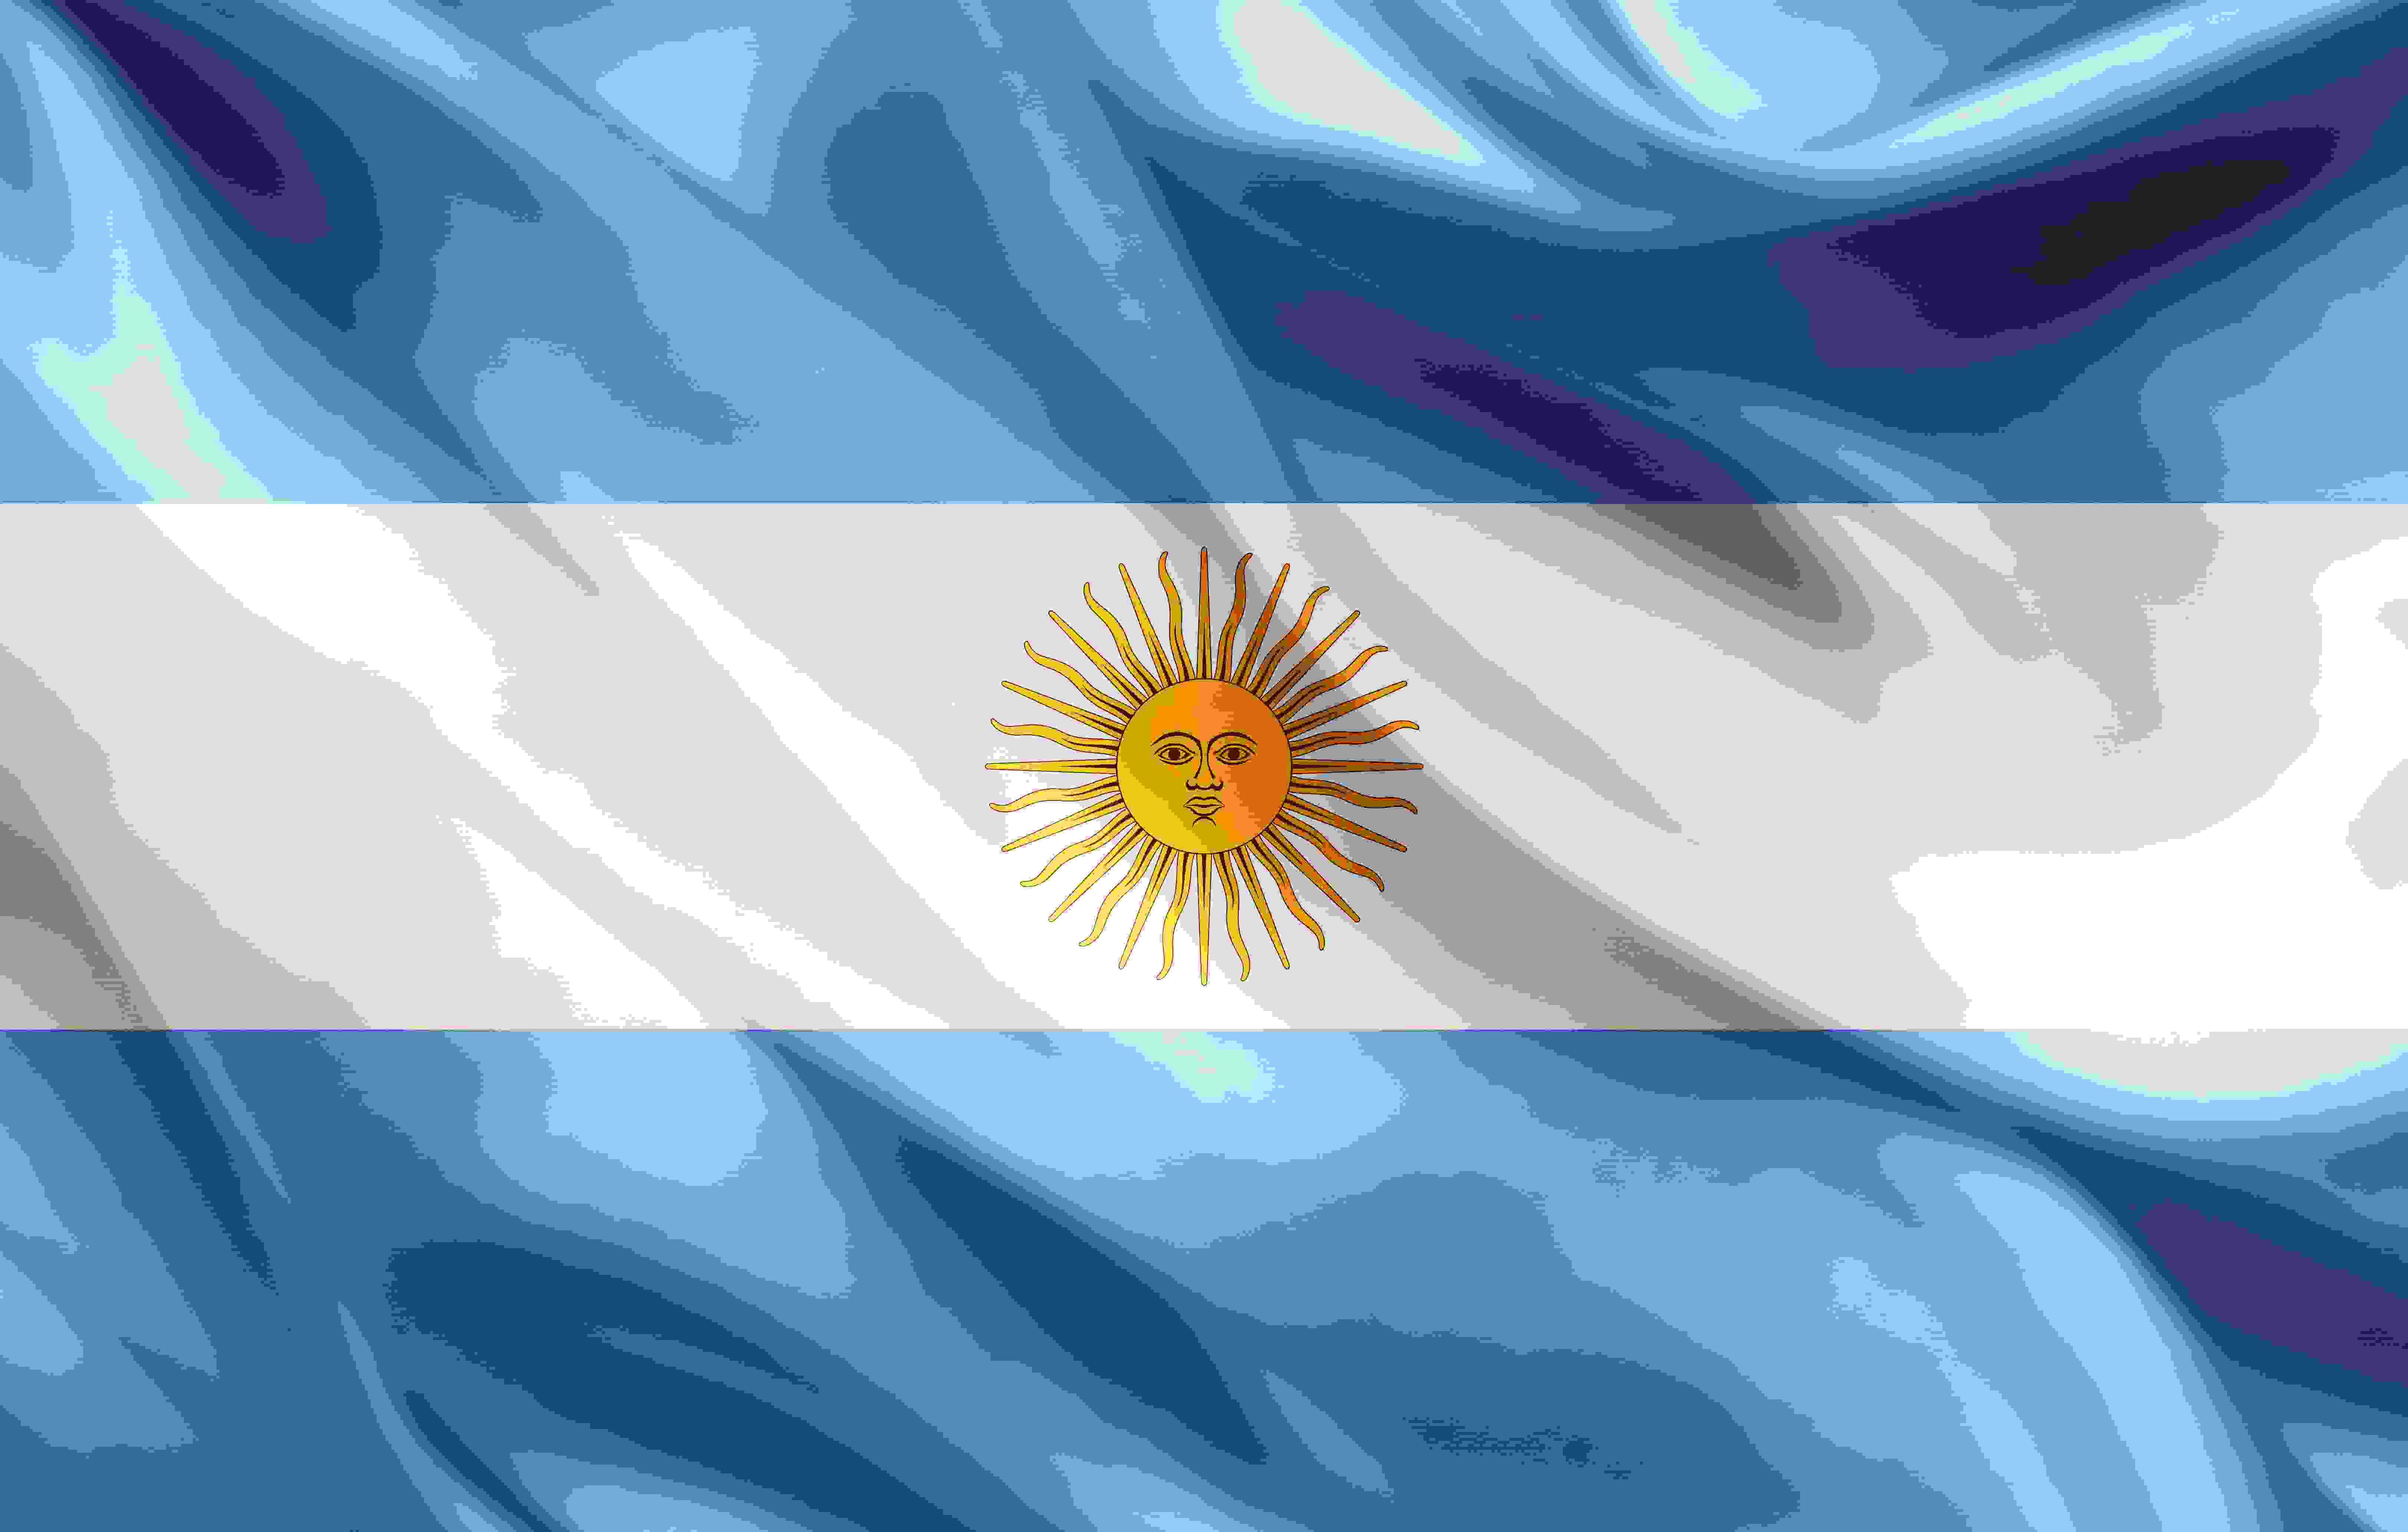 DAC Beachcroft Continues LatAm Expansion With New Association in Argentina